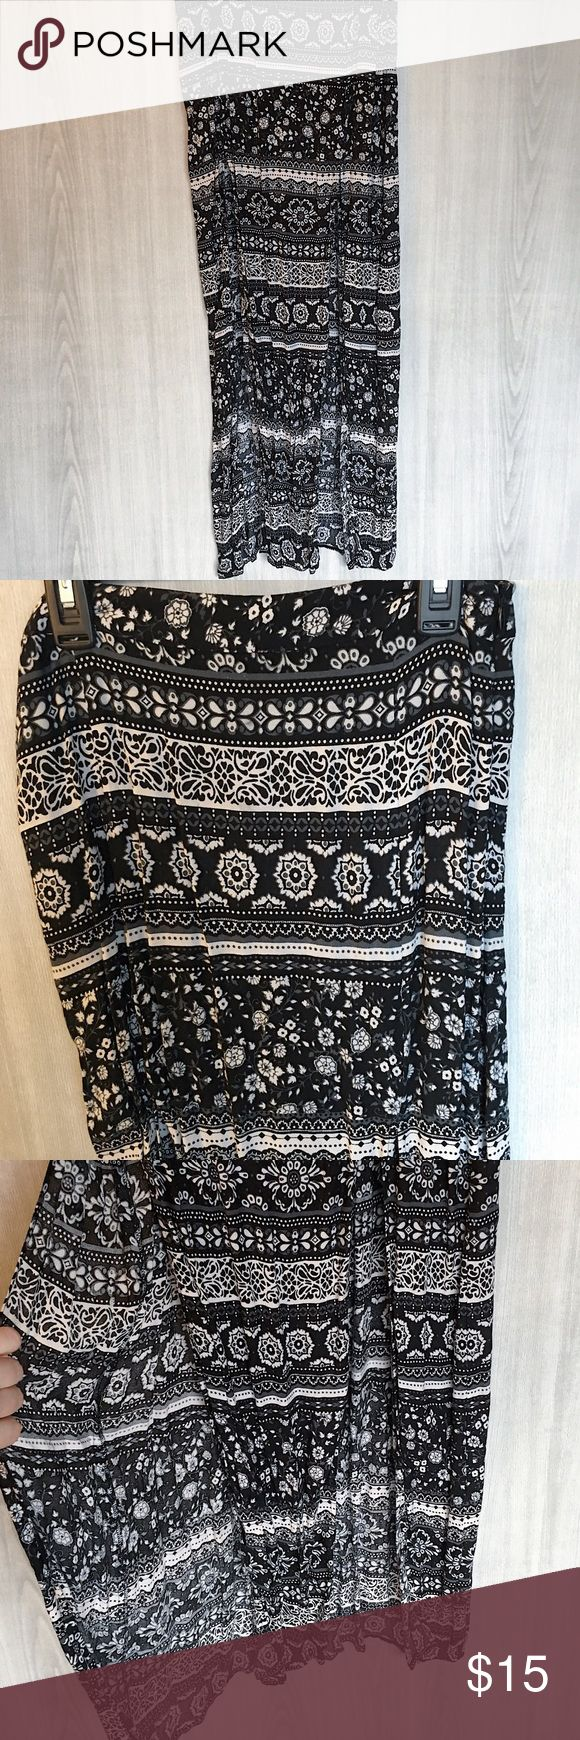 Beautiful tribal maxi skirt! You'll be a boho princess in this beautiful black tribal maxi skirt featuring two slits. Never worn, new with tags! Forever 21 Skirts Maxi